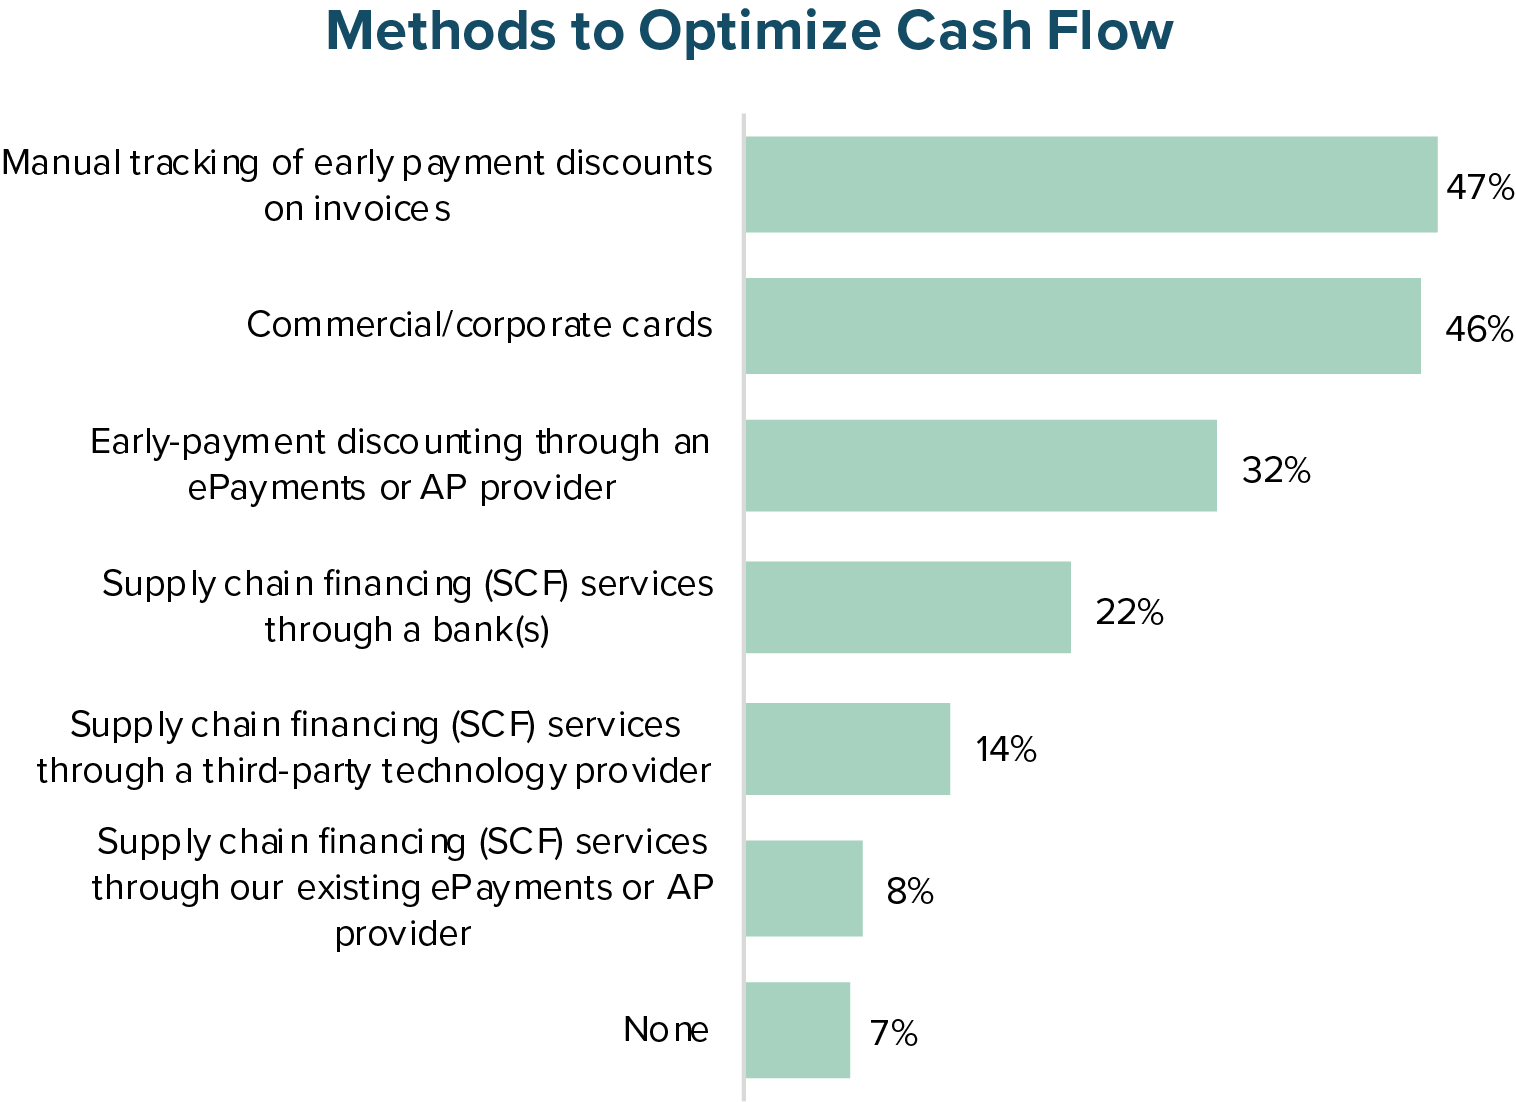 Methods to Optimize Cash Flow